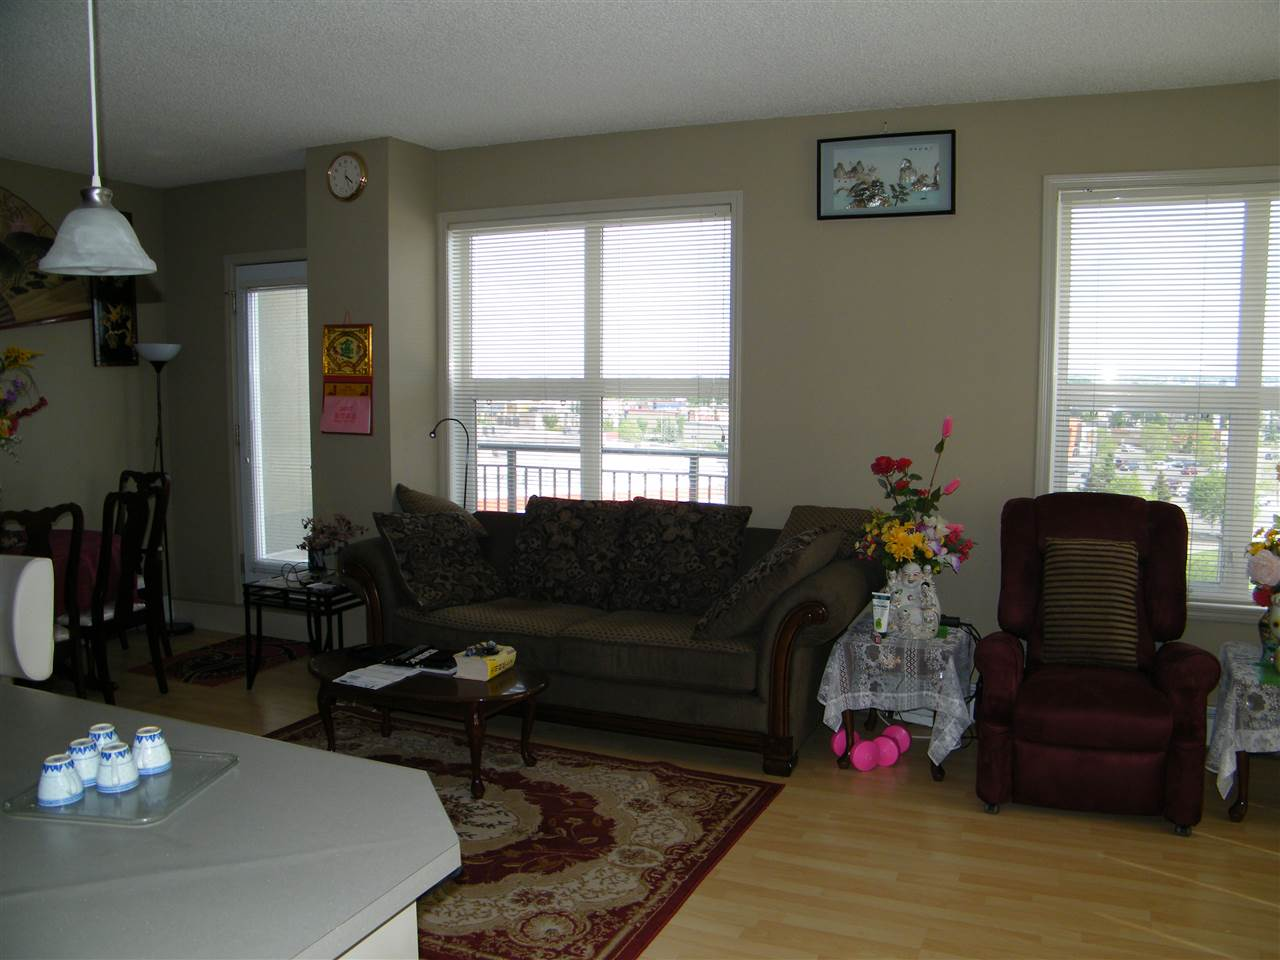 Photo 11: 2-615 4245 139 Avenue in Edmonton: Zone 35 Condo for sale : MLS® # E4068635